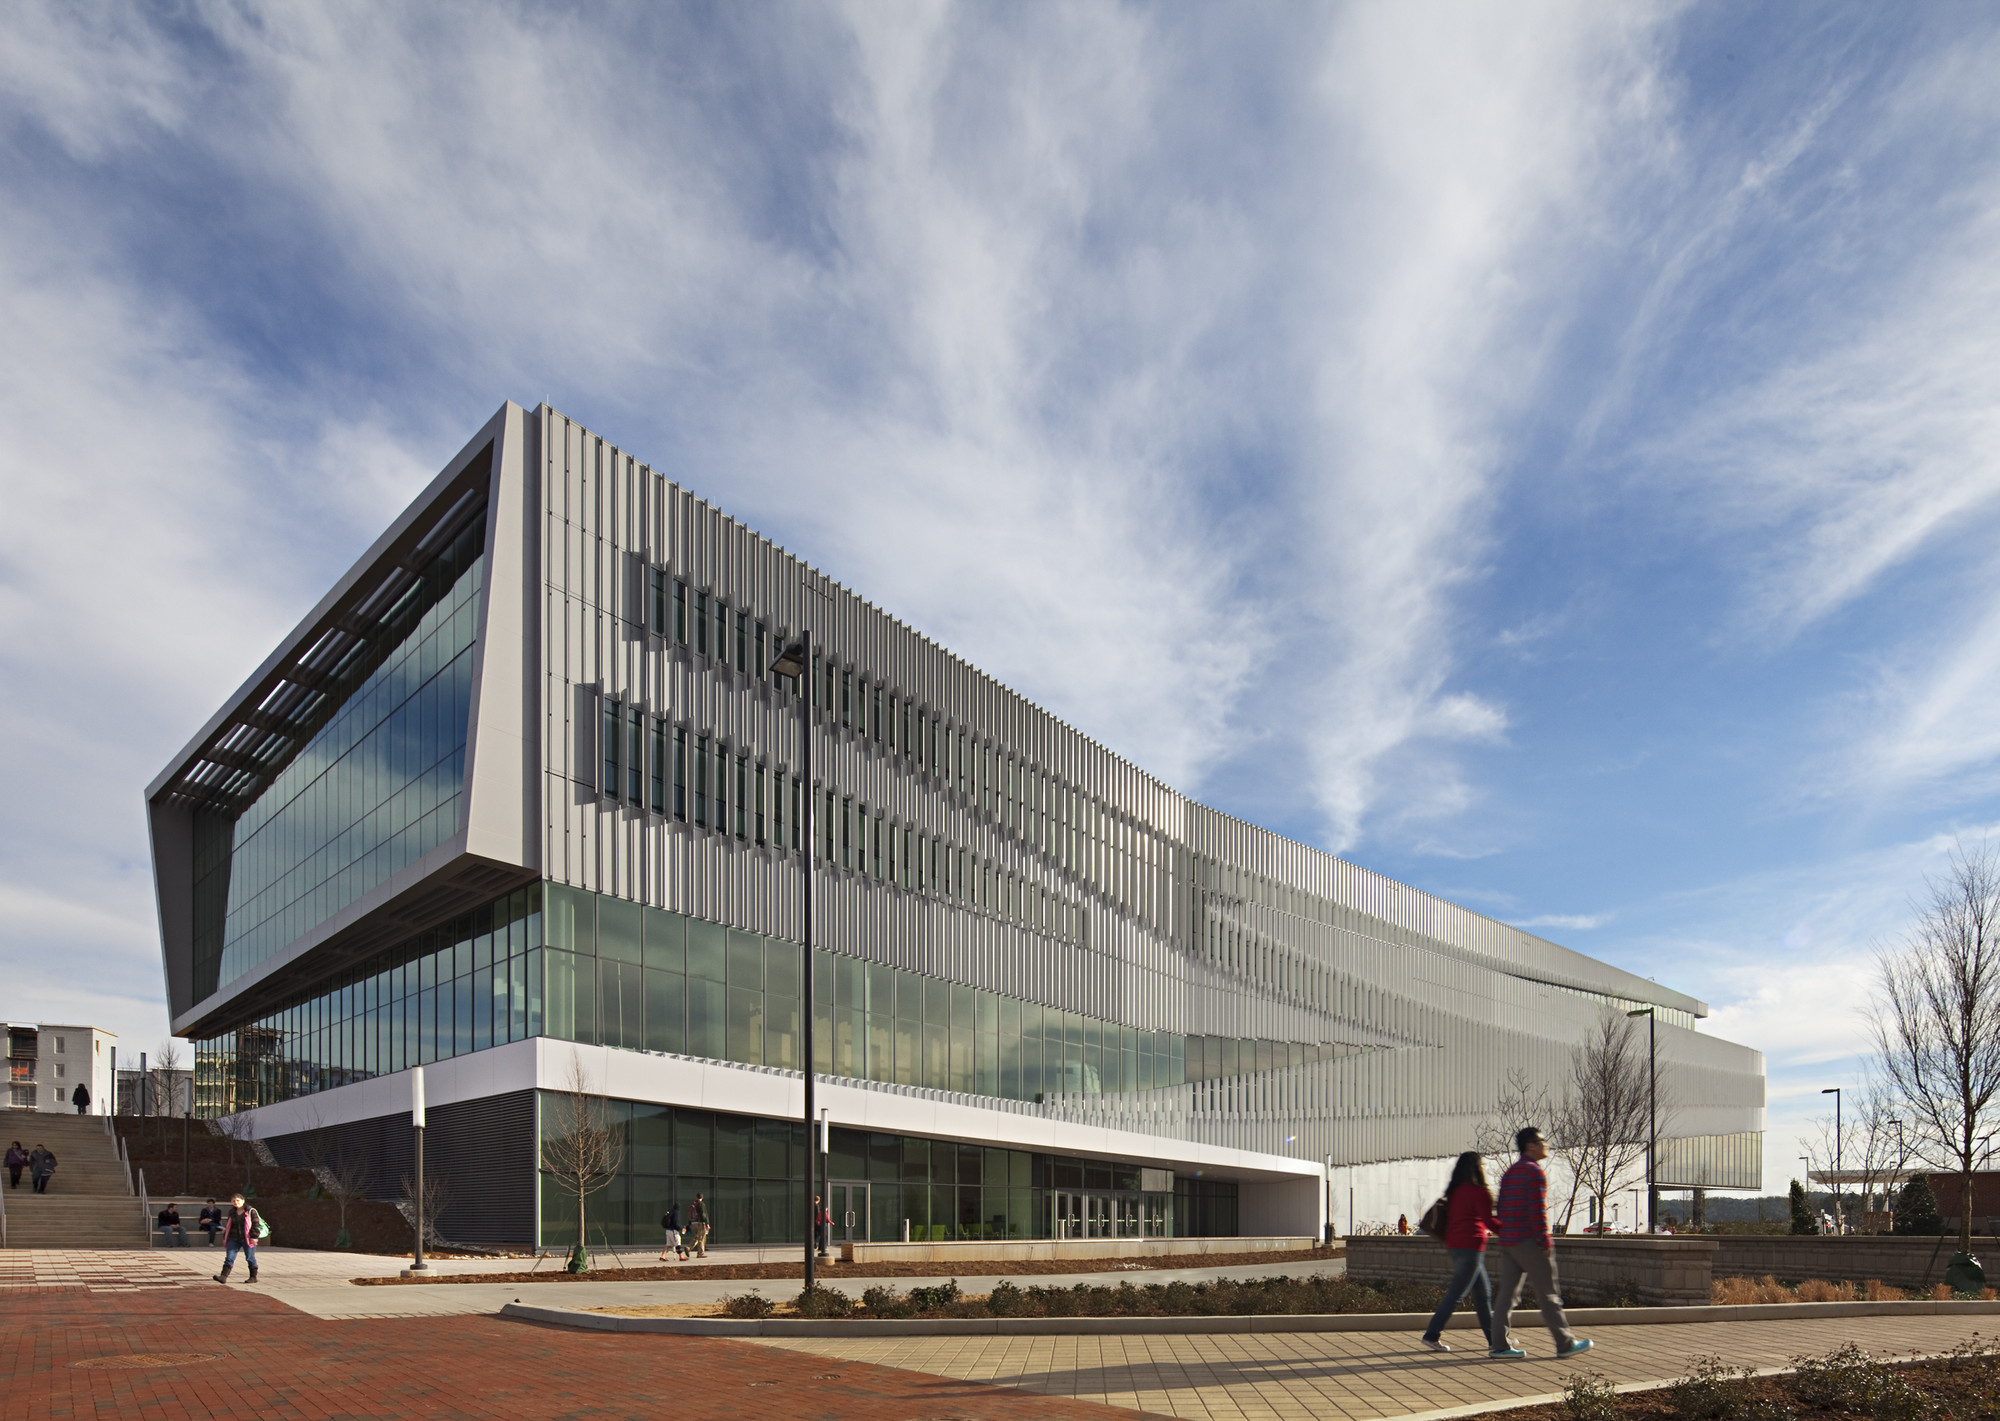 James B. Hunt Jr. Library; Raleigh, North Carolina / Snøhetta and Pearce Brinkley Cease + Lee © Mark Herboth